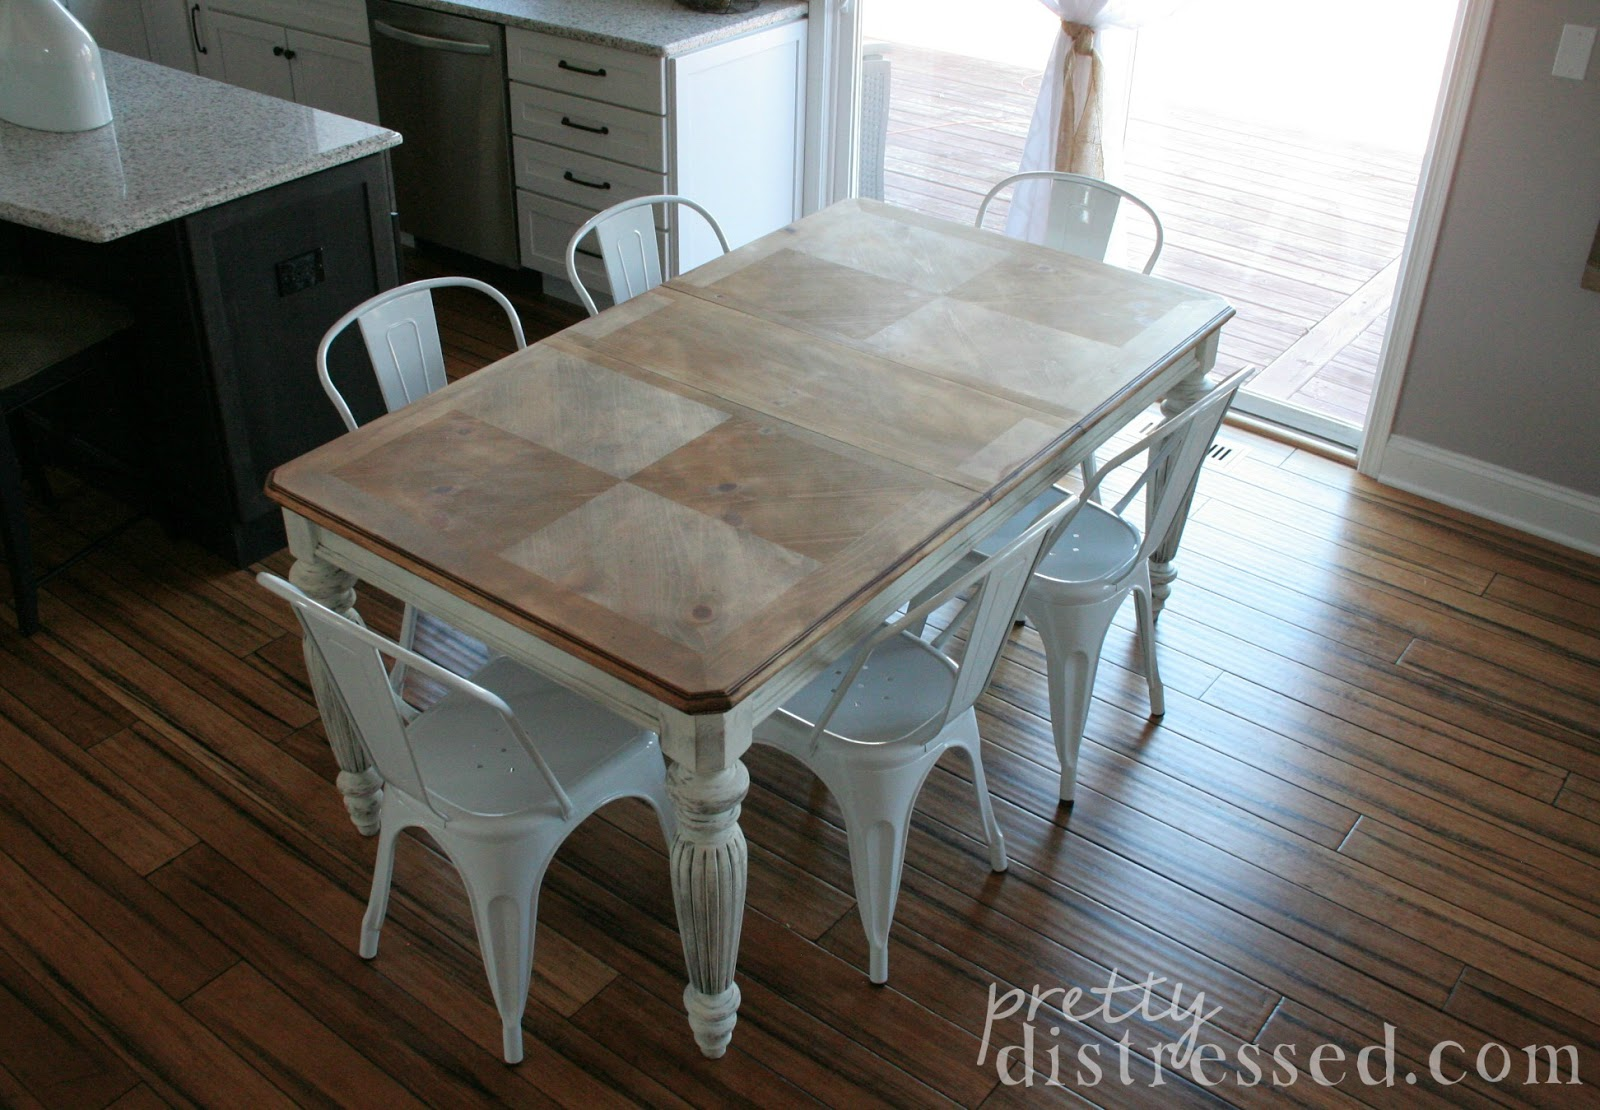 White Wood Kitchen Table Soapstone Counters Pretty Distressed The Making Of A Farmhouse